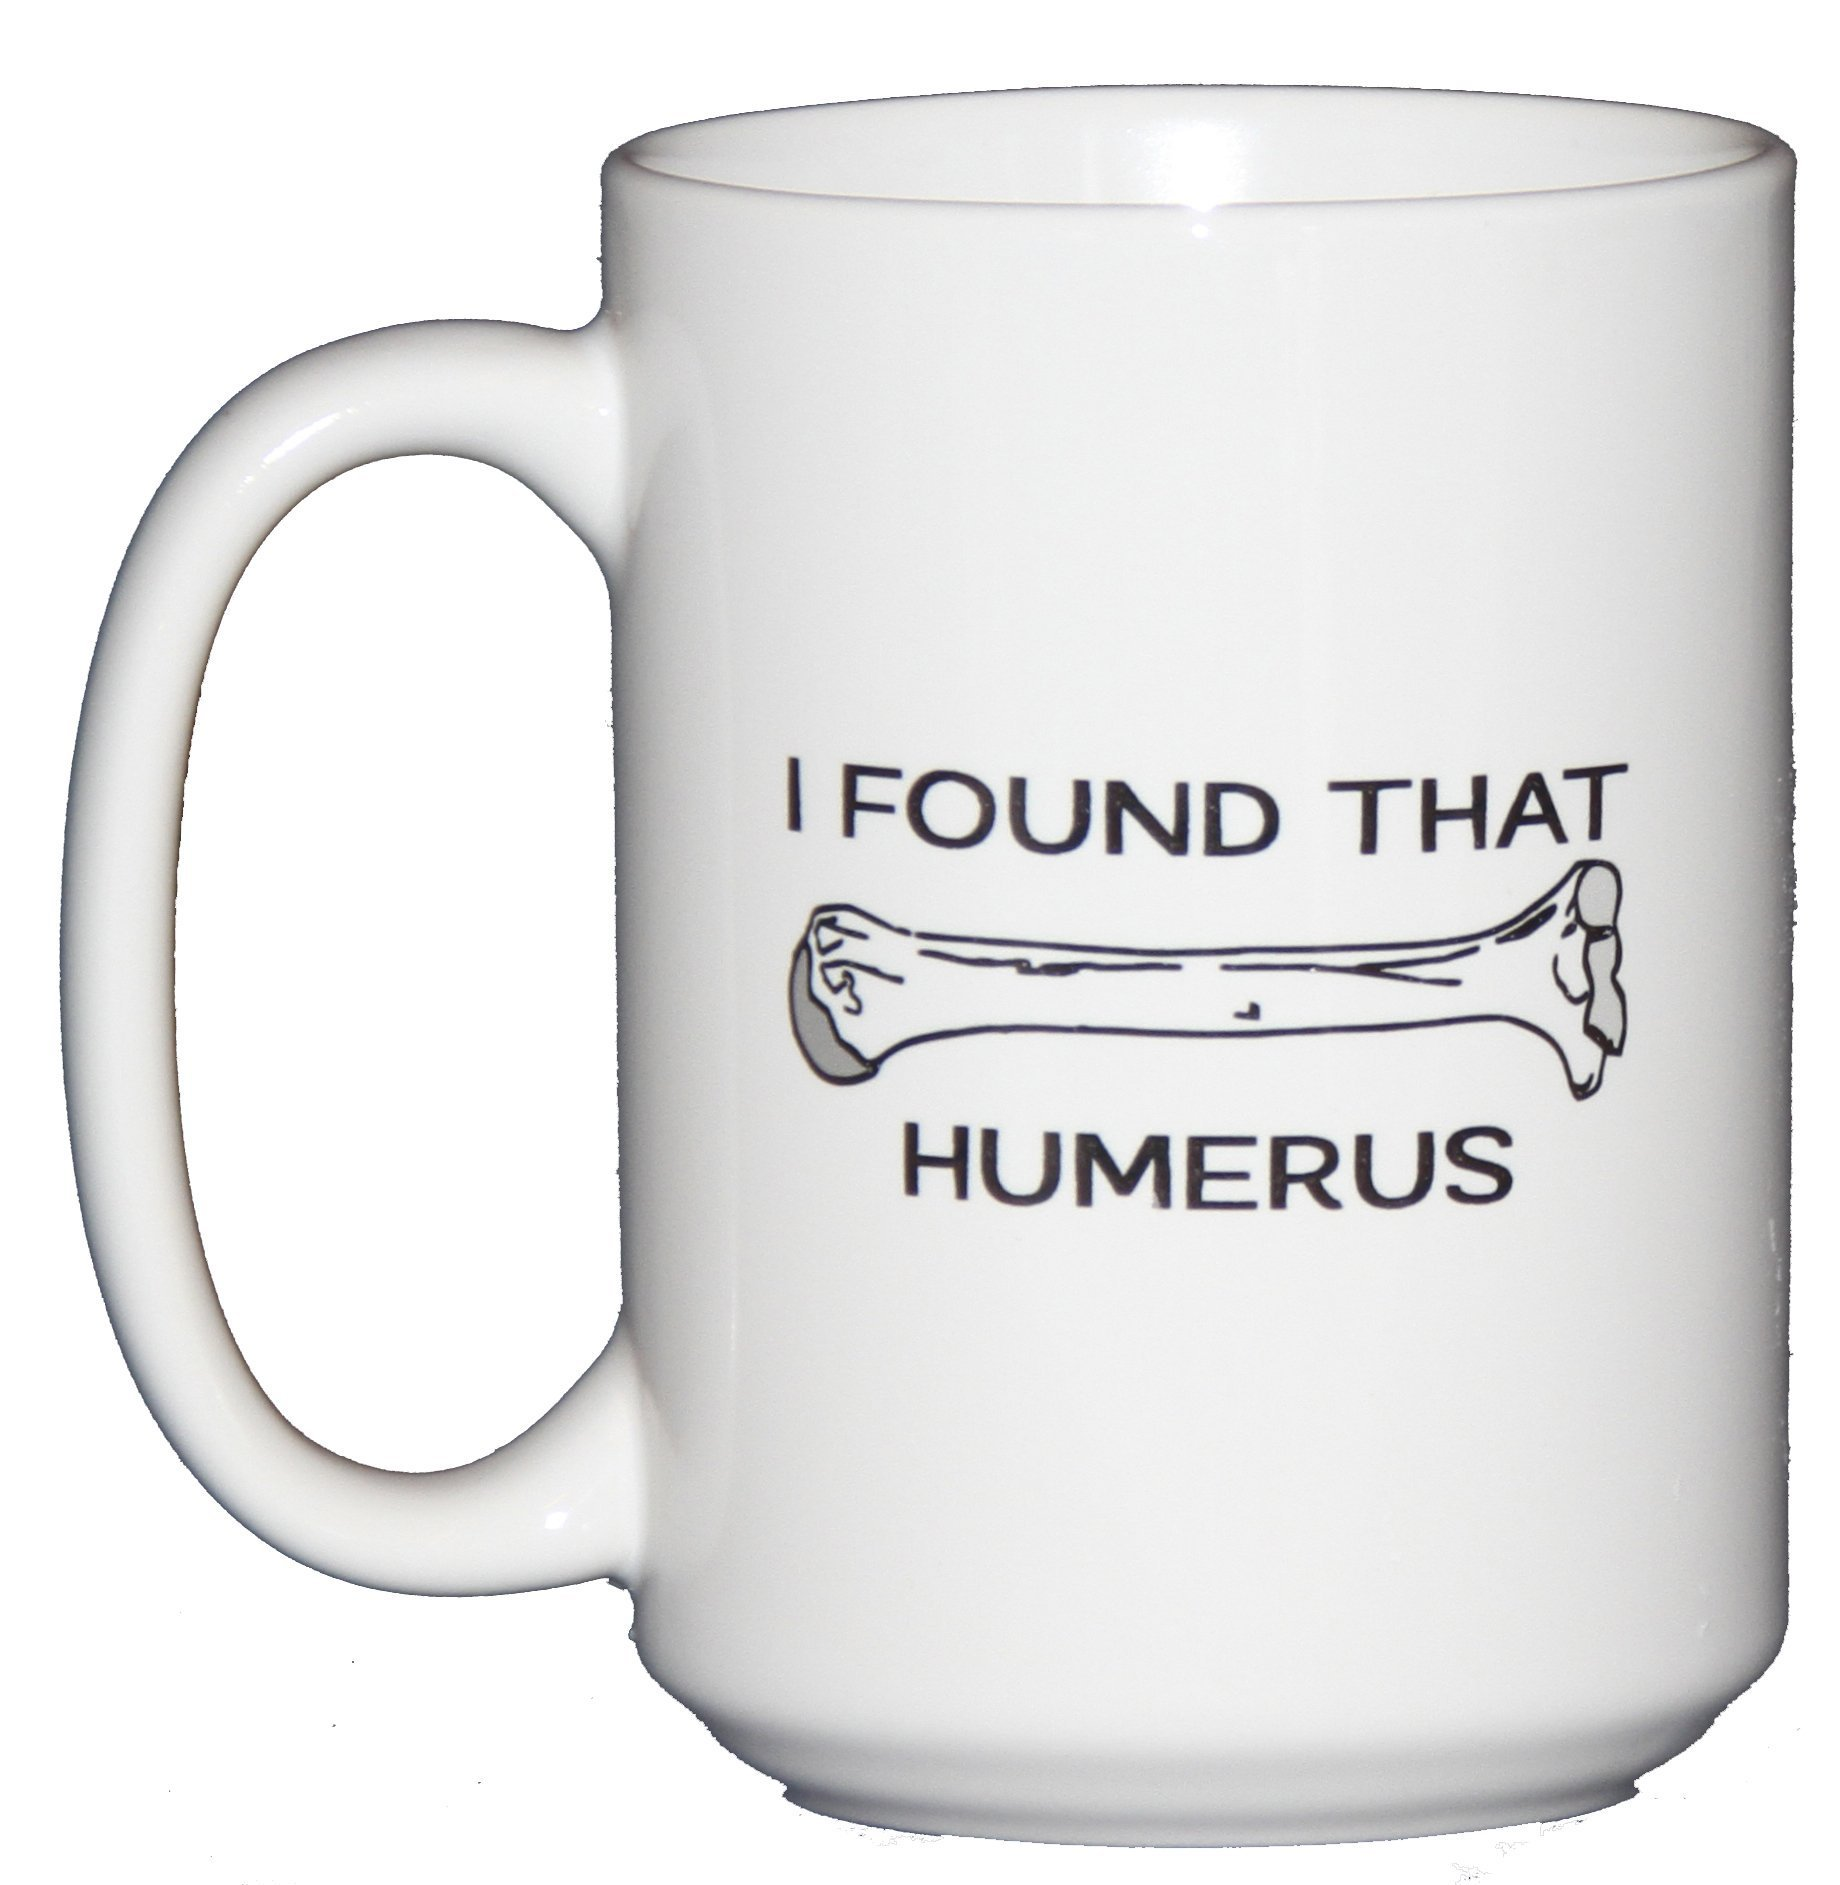 I Found that Humerus - Funny Coffee Mug Gift for Doctors or Other Hilarious People